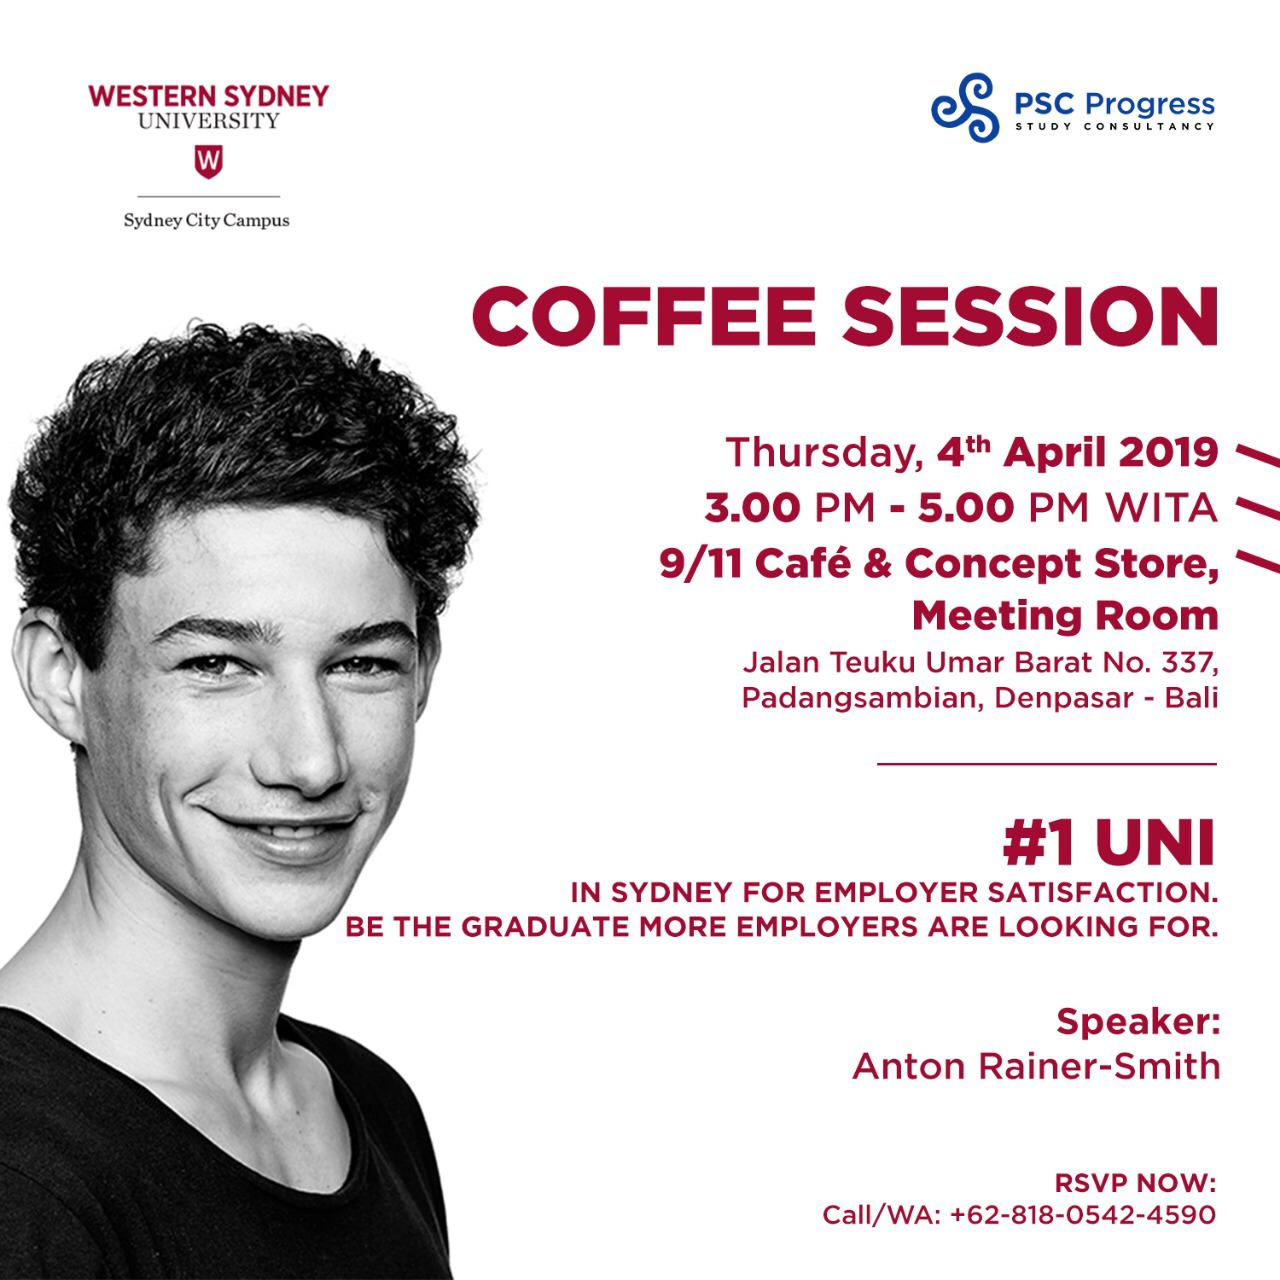 """Coffee Session"" bersama Western Sydney University (WSU) image 1"